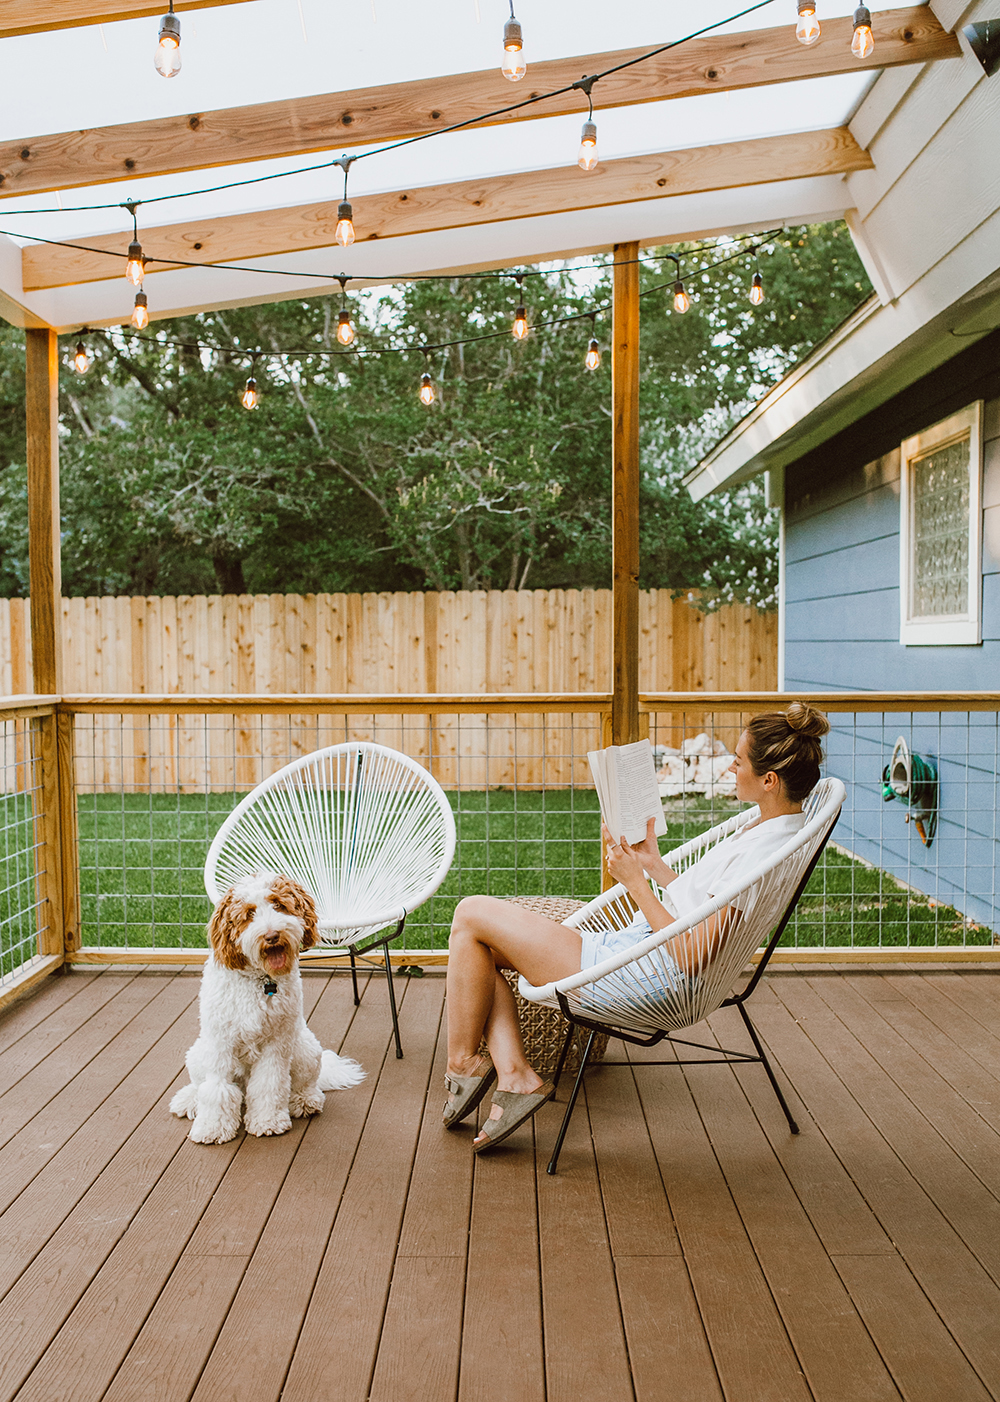 livvyland-blog-olivia-watson-before-after-outside-patio-renovation-reveal-furniture-austin-texas-lifestyle-blogger-1